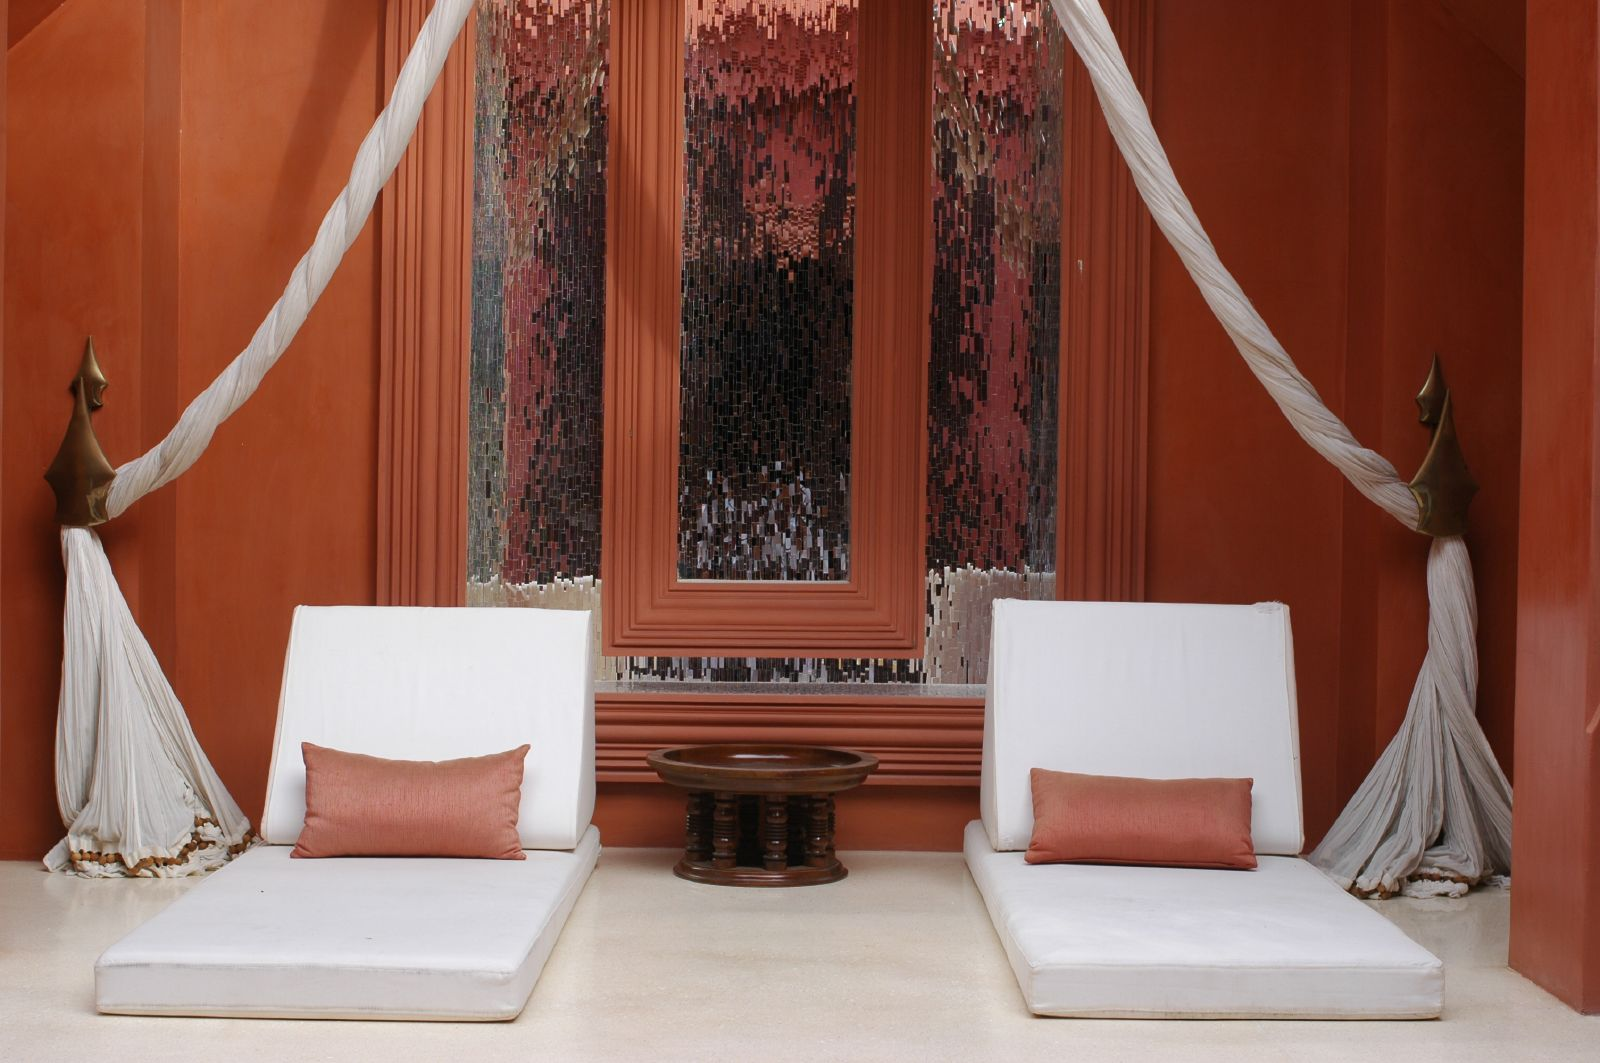 Thailands Exceptional Spa and Massage Parlors : Thailand